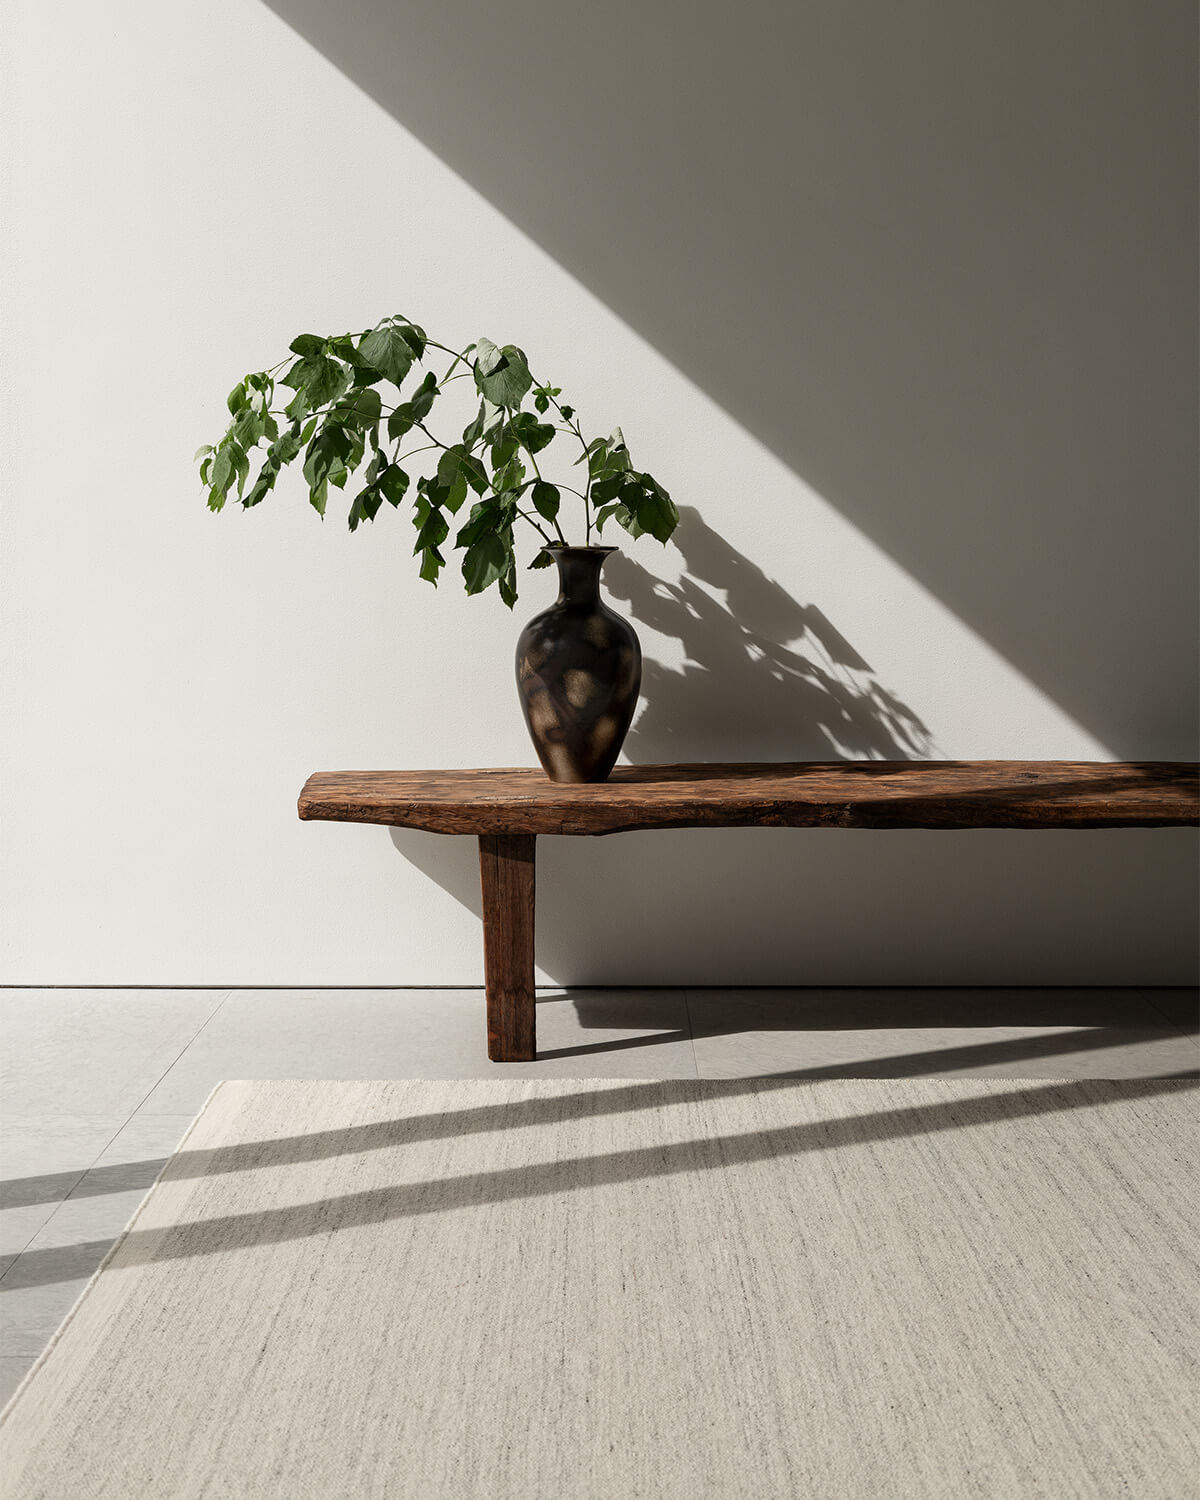 Zero in Cream Mix shown in a sunny setting with a wooden bench styled with a vintage vase.